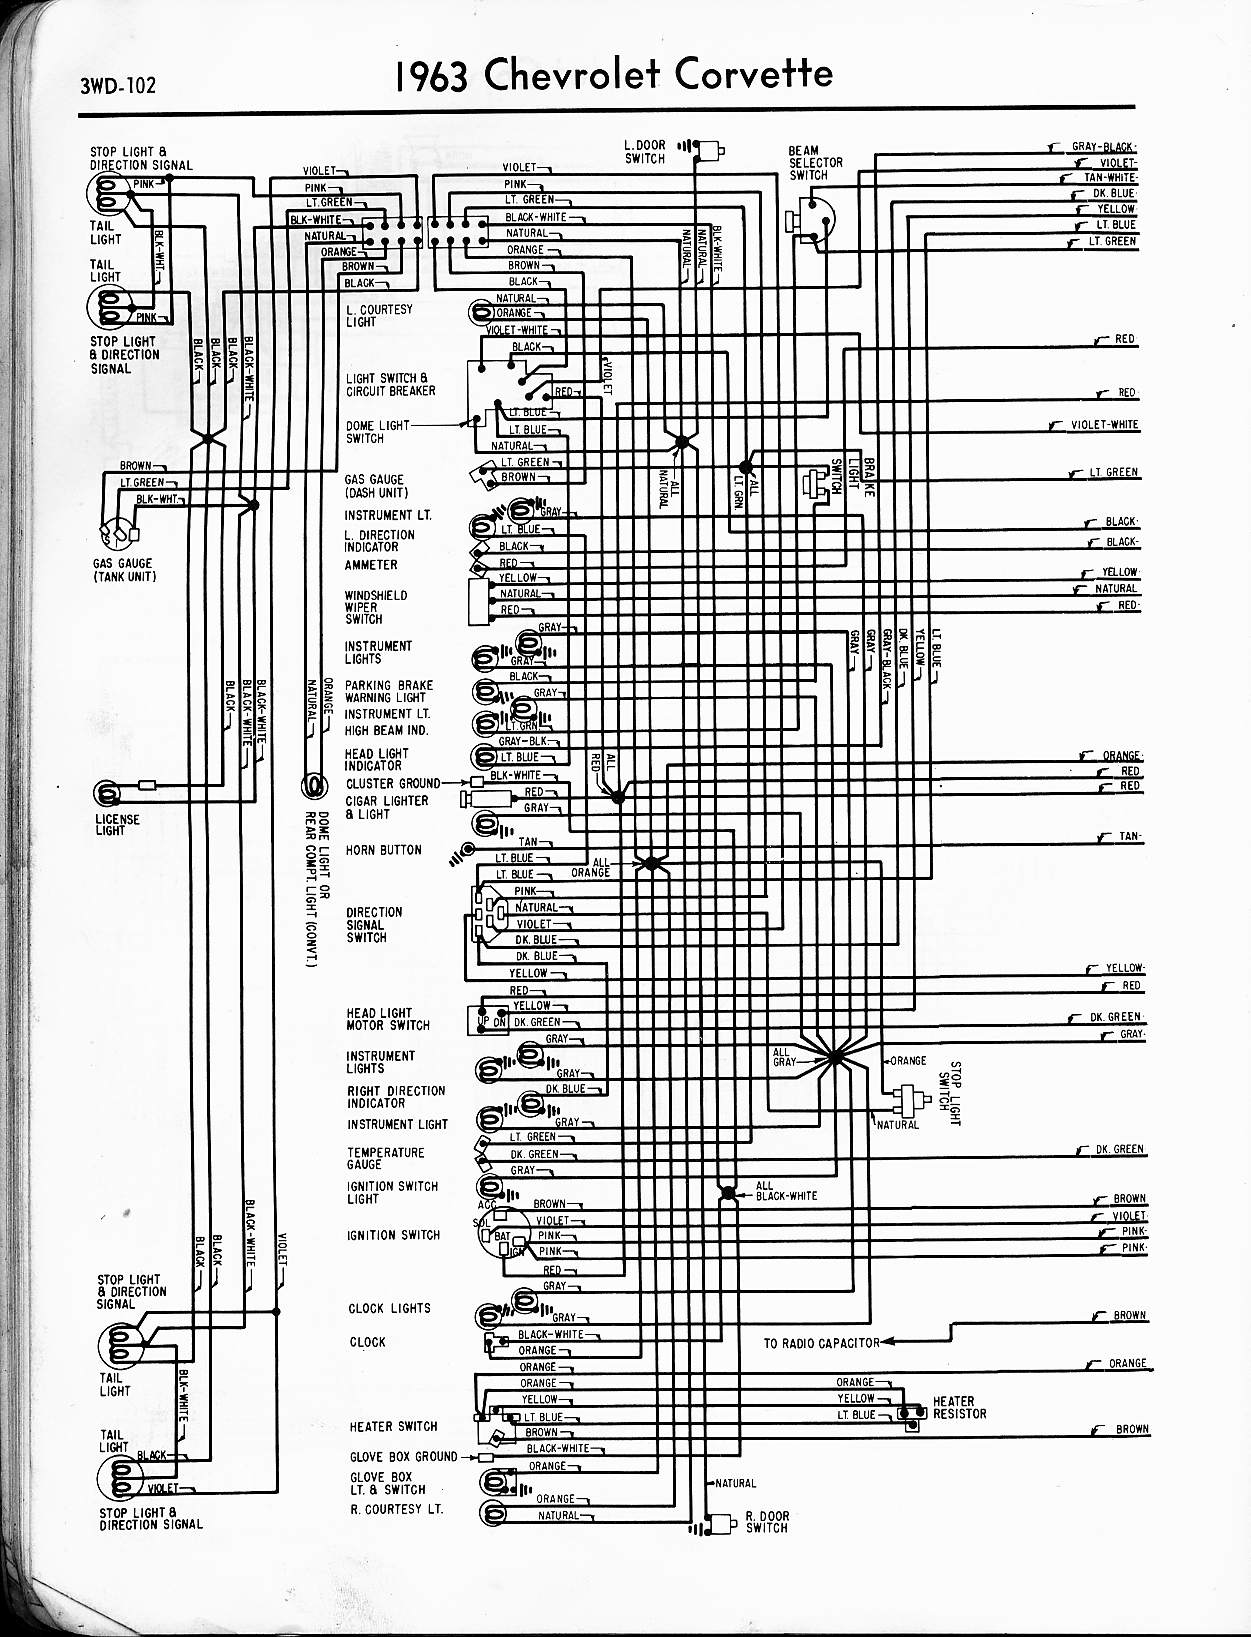 64 Nova Wiring Diagram - 9.3.petraoberheit.de •  Chevy Ignition Wiring Diagram on 1974 chevy electrical diagram, 1974 chevy ignition switch, 1974 chevy charging diagram, 1974 chevy ignition coil, 1974 chevy fuse box diagram,